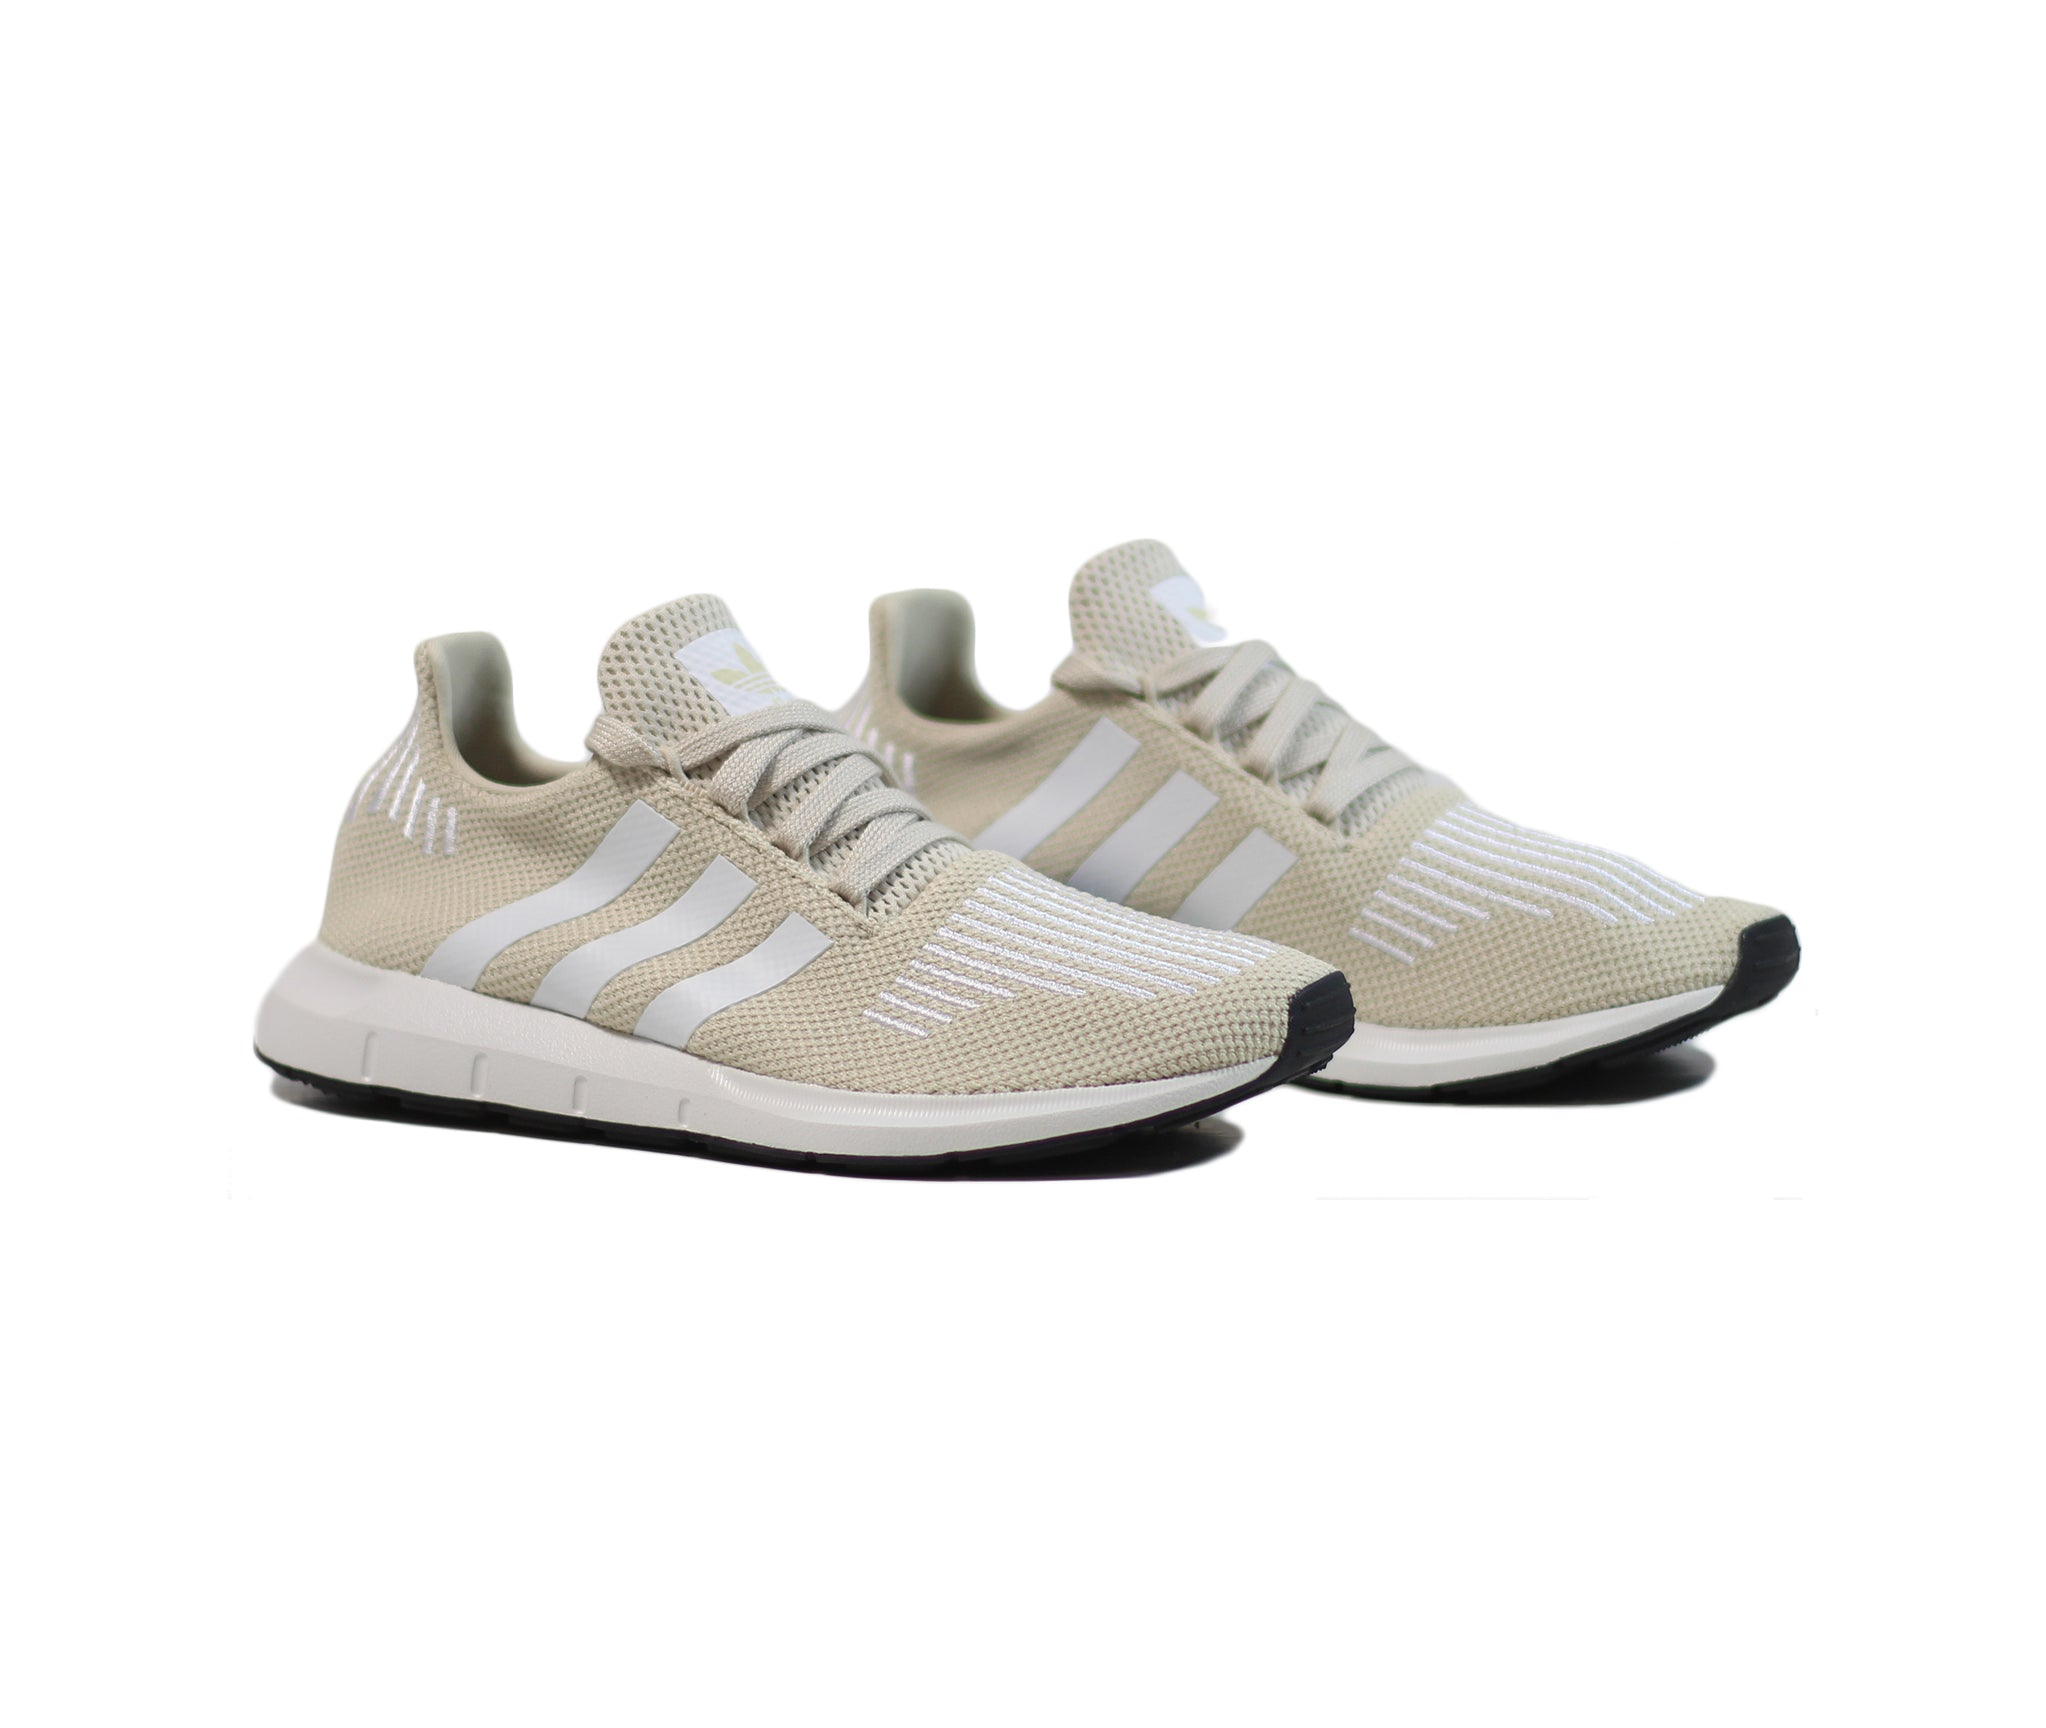 af4780c0e Adidas Women s Swift Run - Beige – History of New York Powered by  Sneaker  Lounge